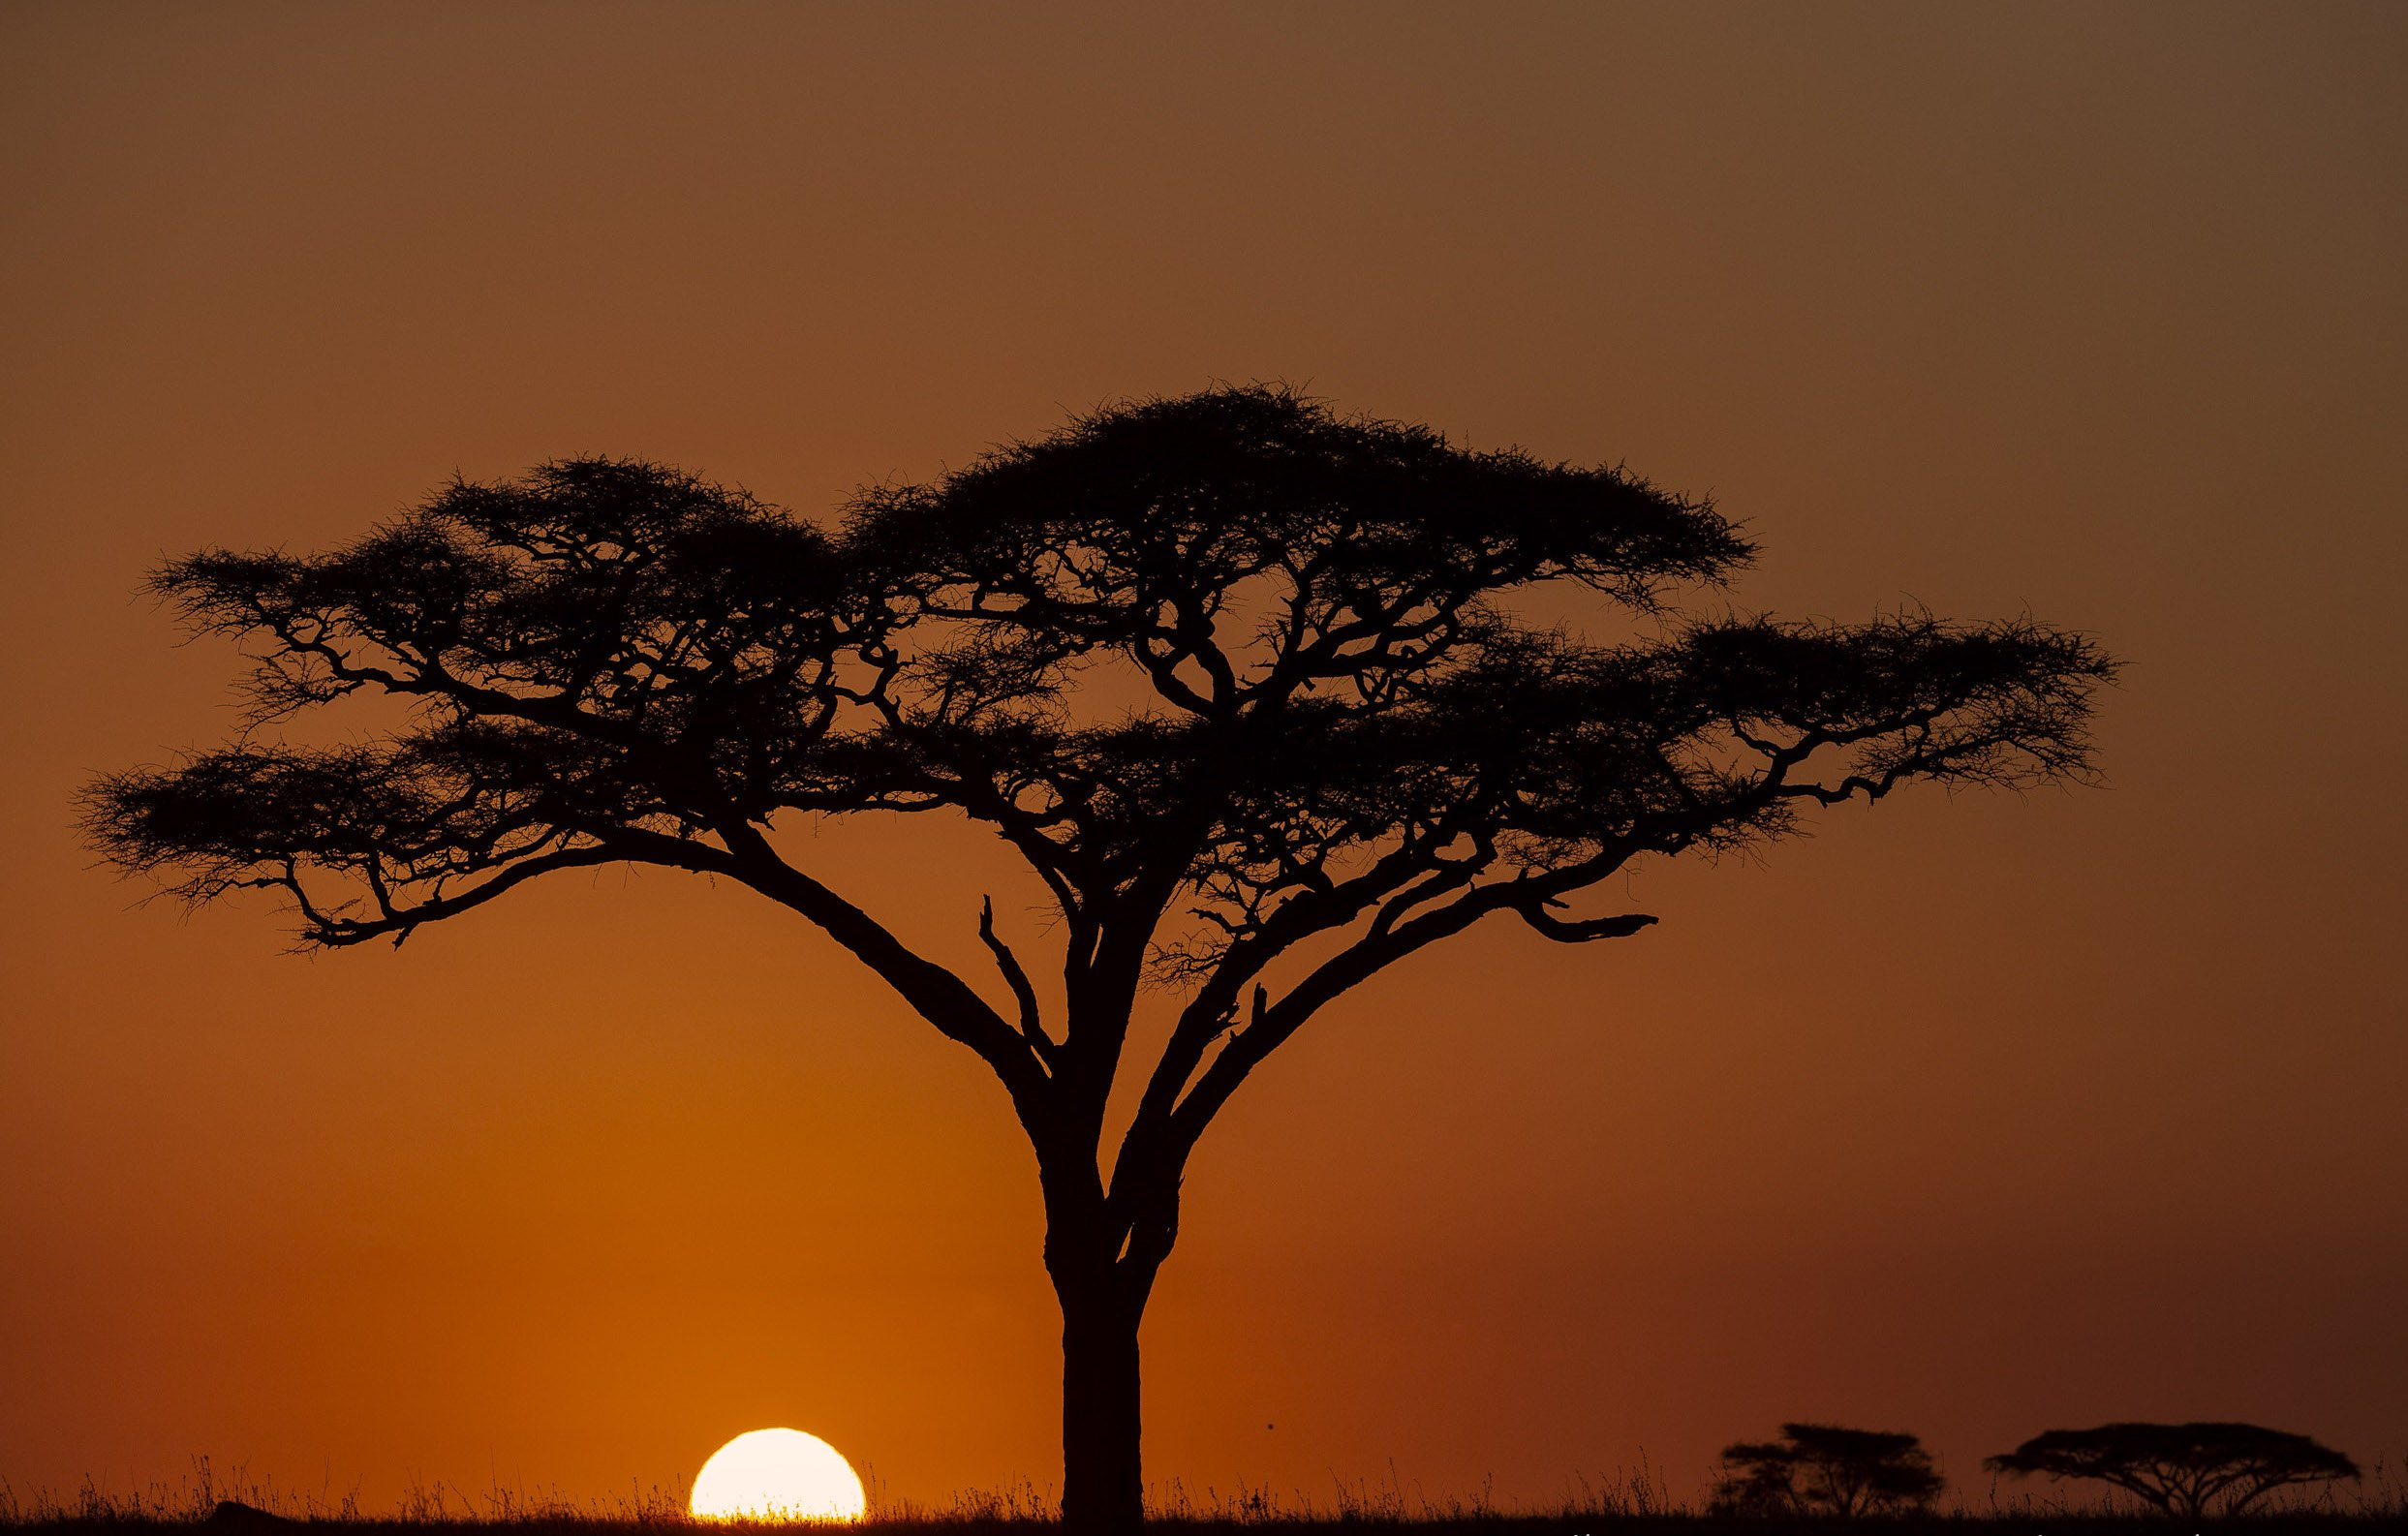 SUNRISE -Serengeti - Eastern hills